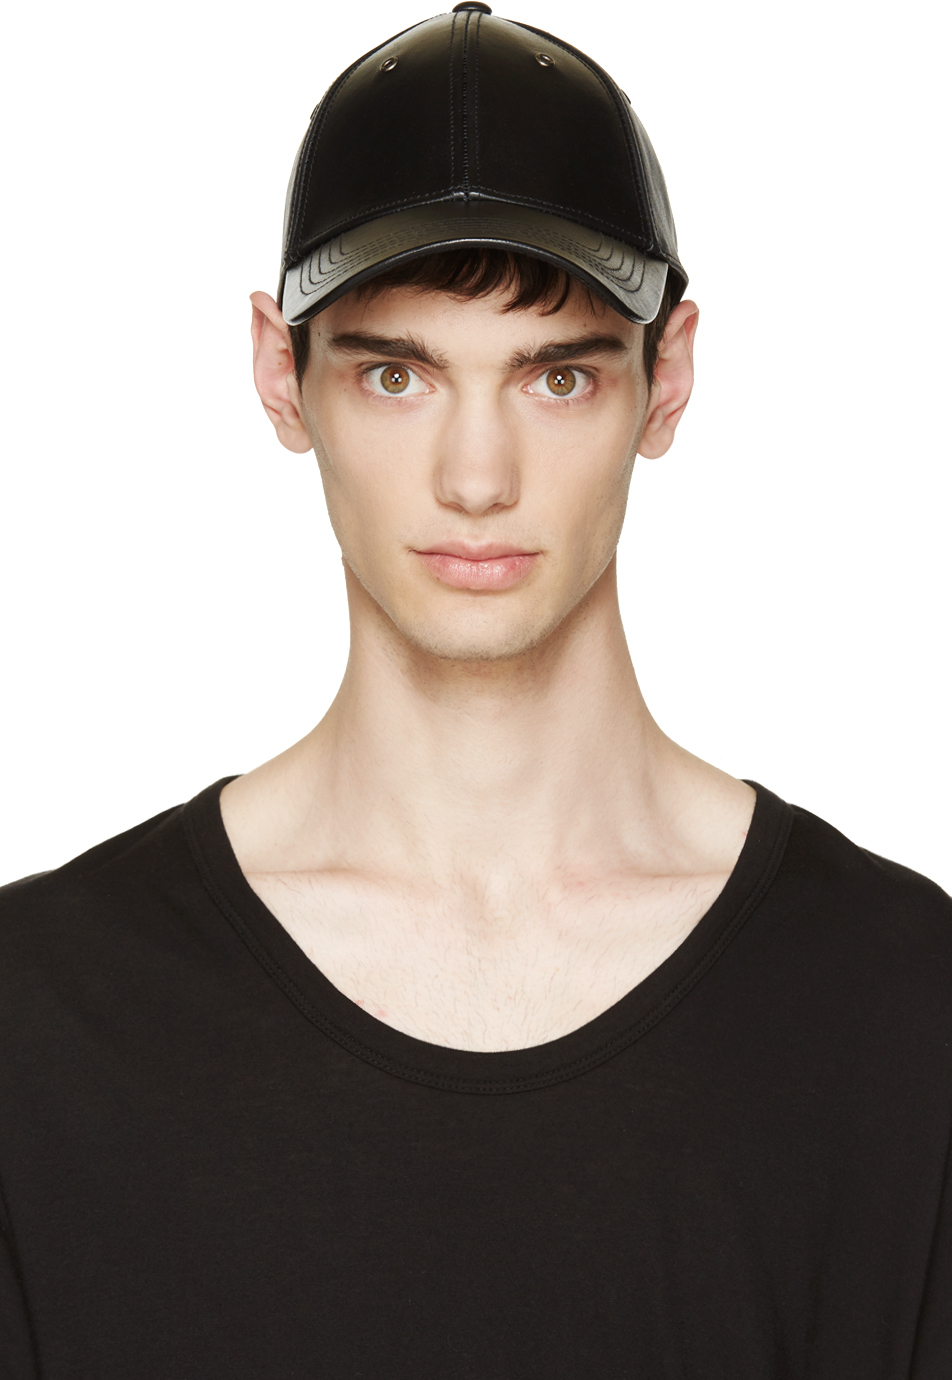 89f5ffc441a Marc By Marc Jacobs Black Leather Snapback Cap in Black for Men - Lyst